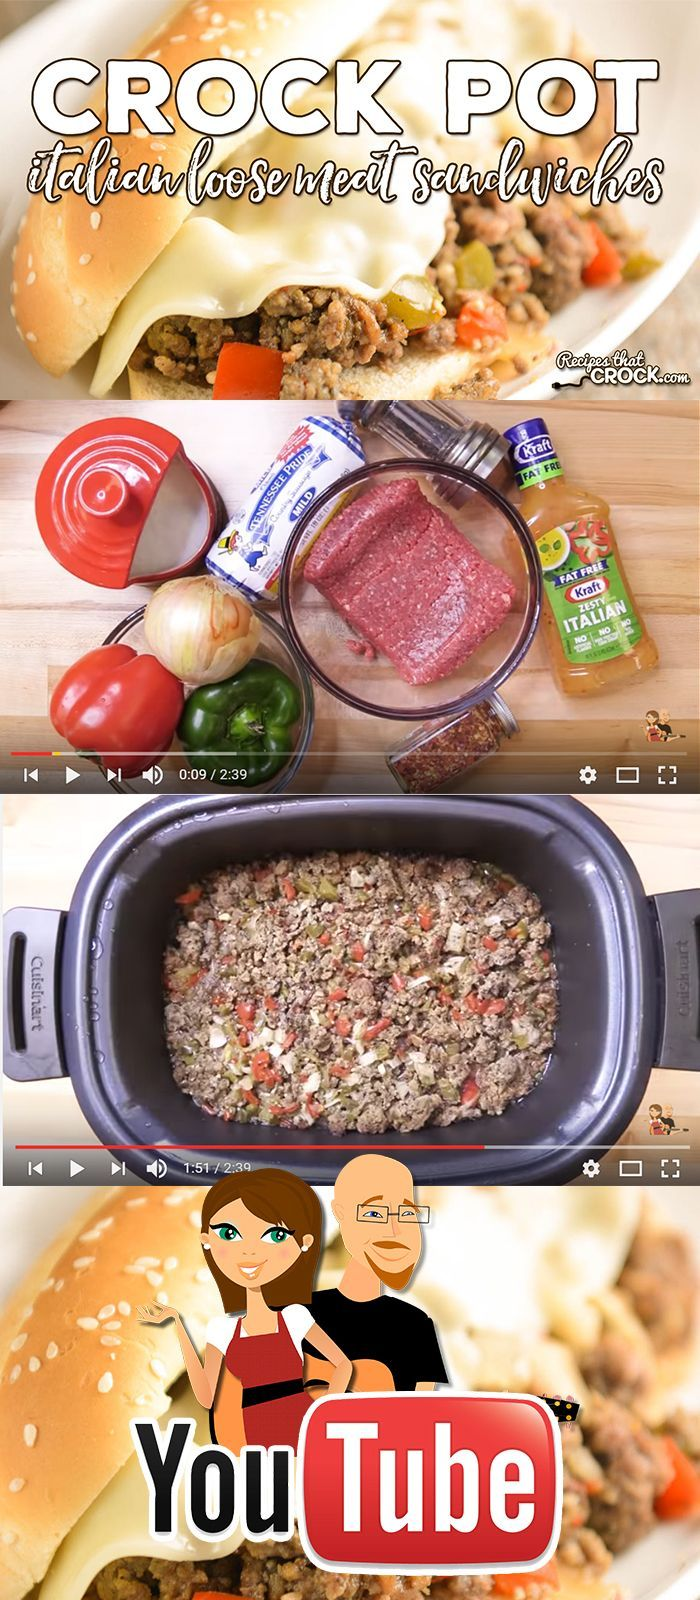 This quick cooking video of this easy slow cooker sandwich takes ground beef and ground sausage and makes a delicious Crock Pot Italian Loose Meat Sandwich with green bell peppers, red bell peppers and onion. Italian dressing ads a nice zippy flavor to bring it all together in one of our family's favorite slow cooker meals. See this video and more easy recipe ideas on our YouTube Channel.